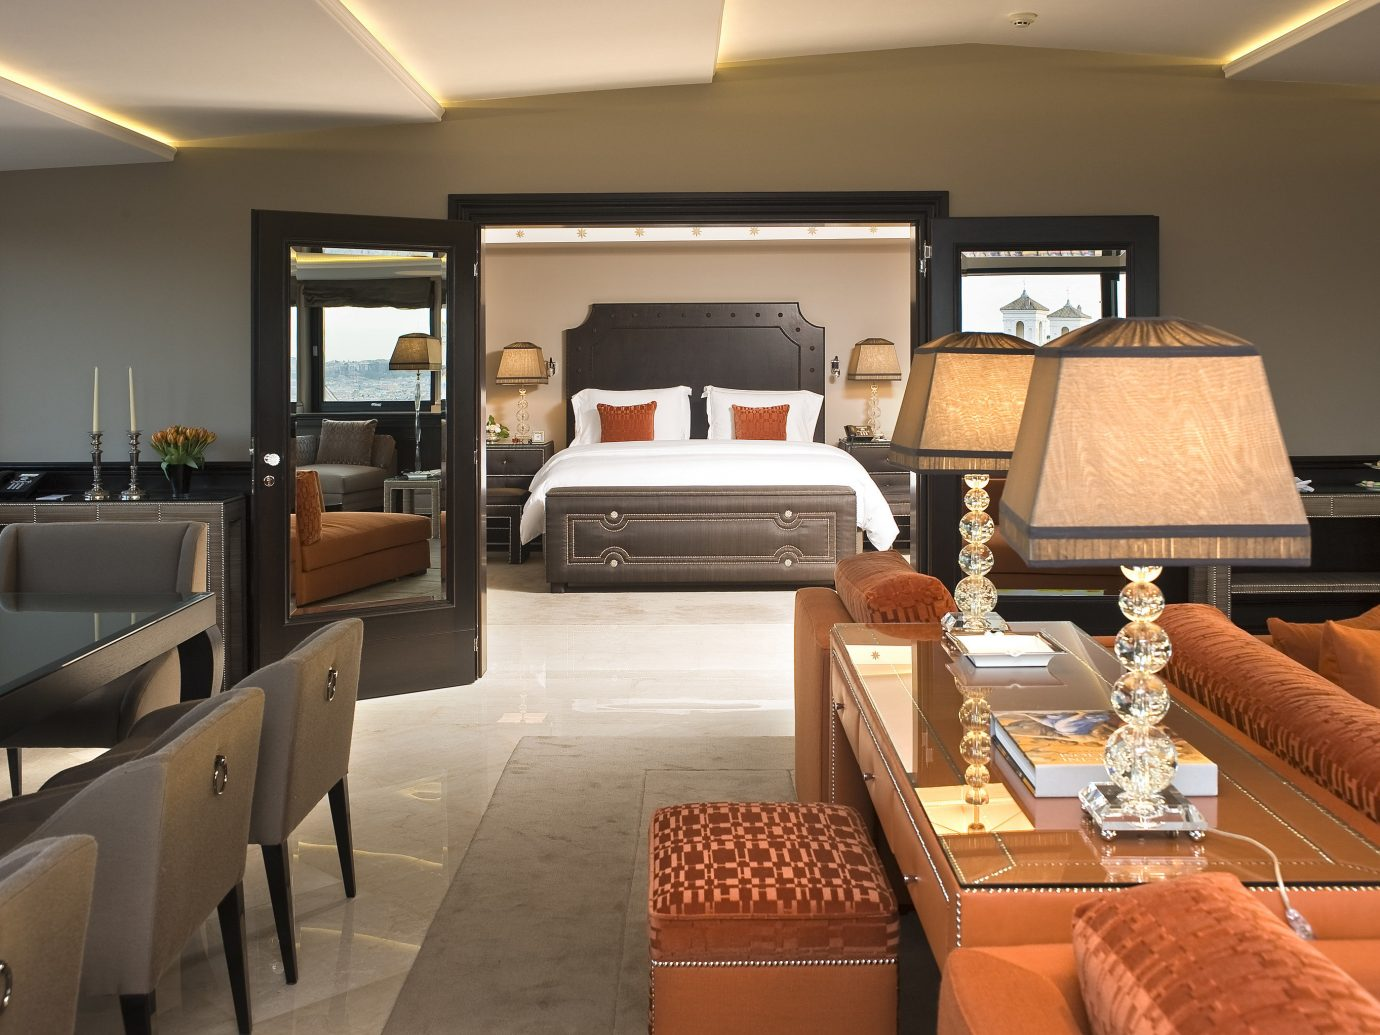 Boutique Hotels Hotels Italy Luxury Travel Romantic Hotels Rome indoor floor ceiling wall room Living property vehicle living room interior design yacht home furniture real estate estate Suite condominium Design